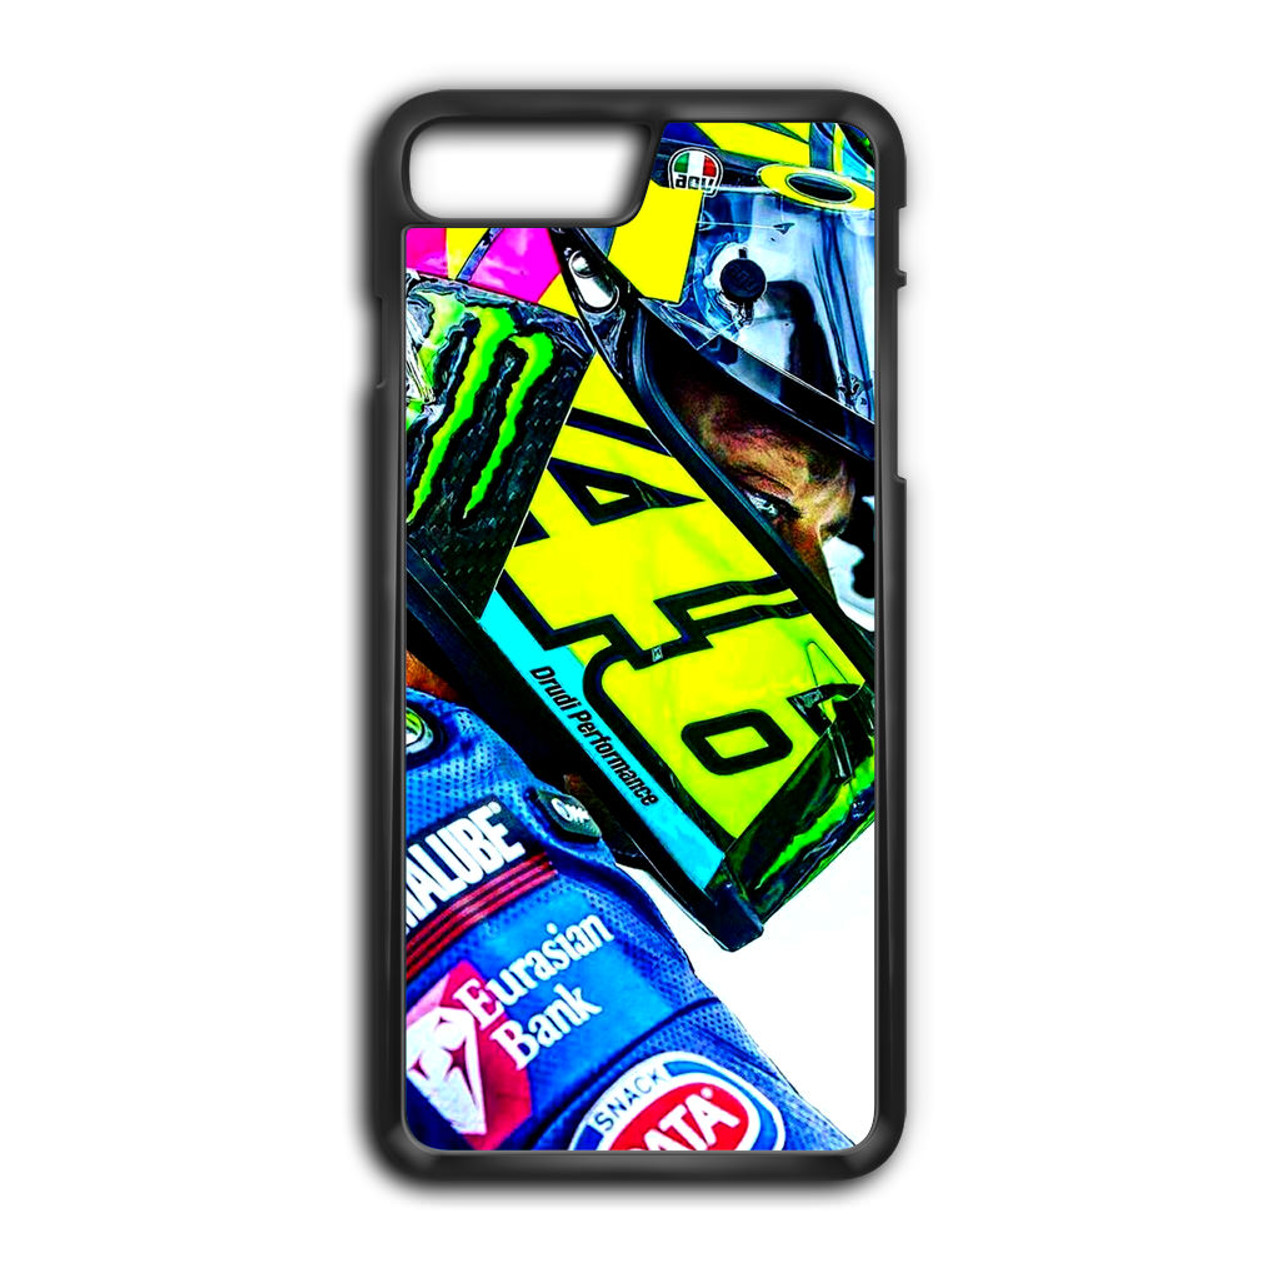 separation shoes d9b8e 2a012 Valentino Rossi iPhone 8 Plus Case